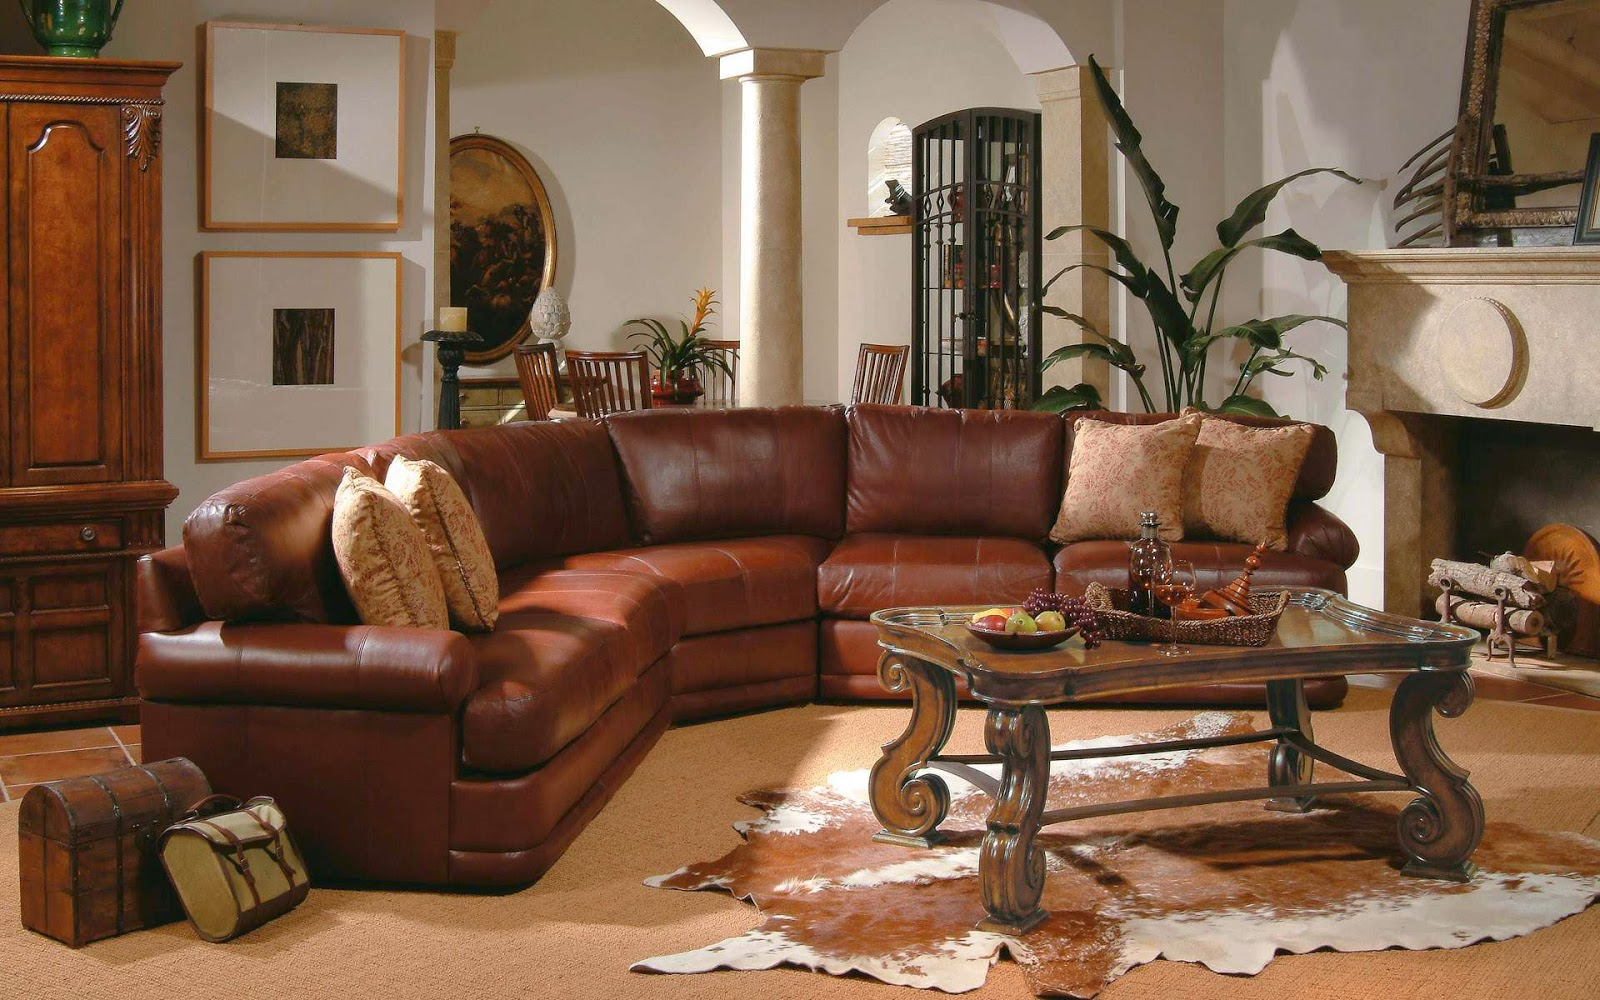 #6 Living Room Decor Ideas With Sectional